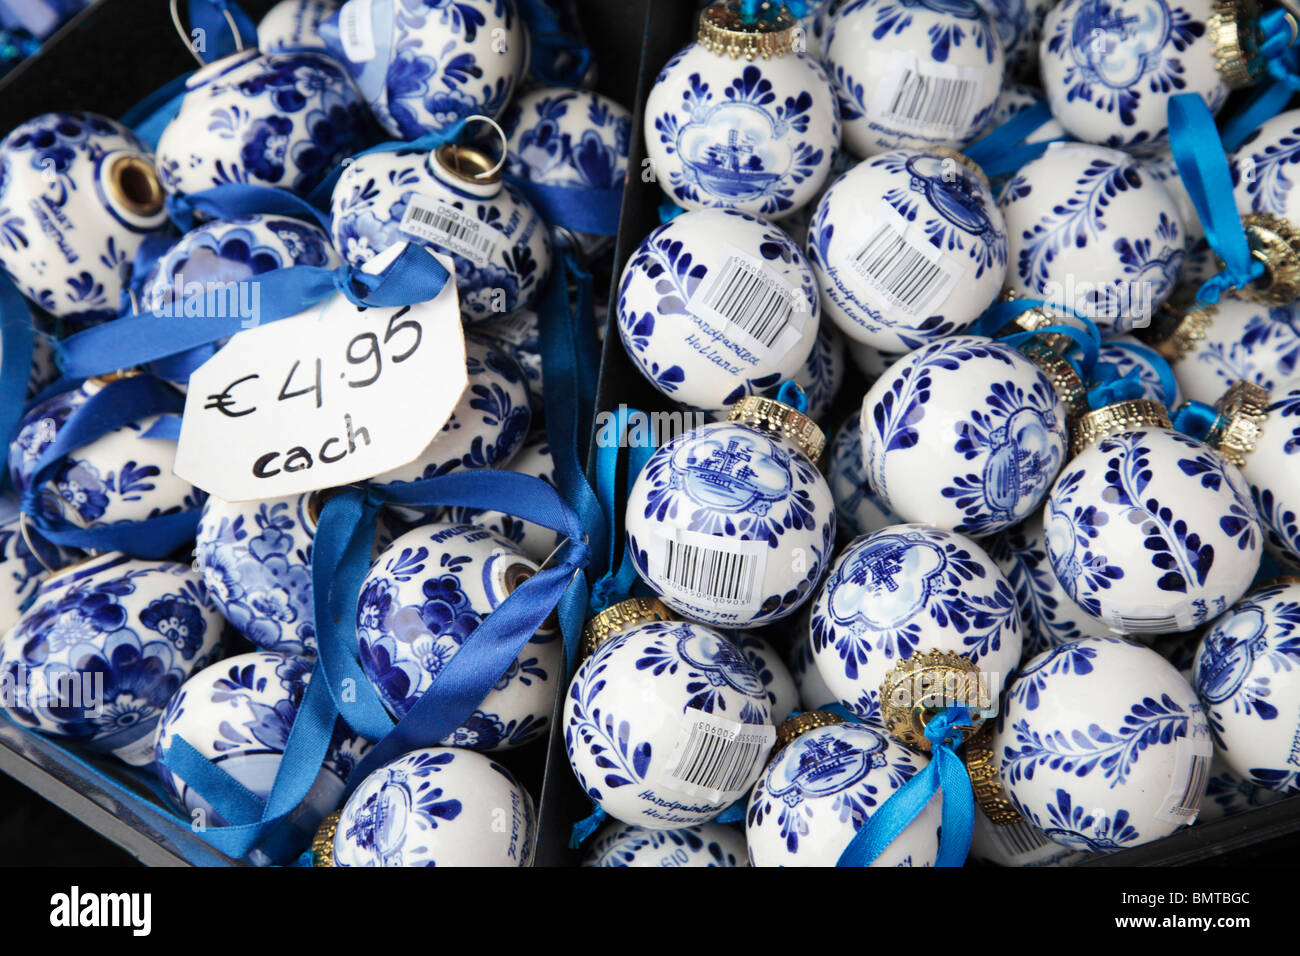 Delft Pottery - Stock Image